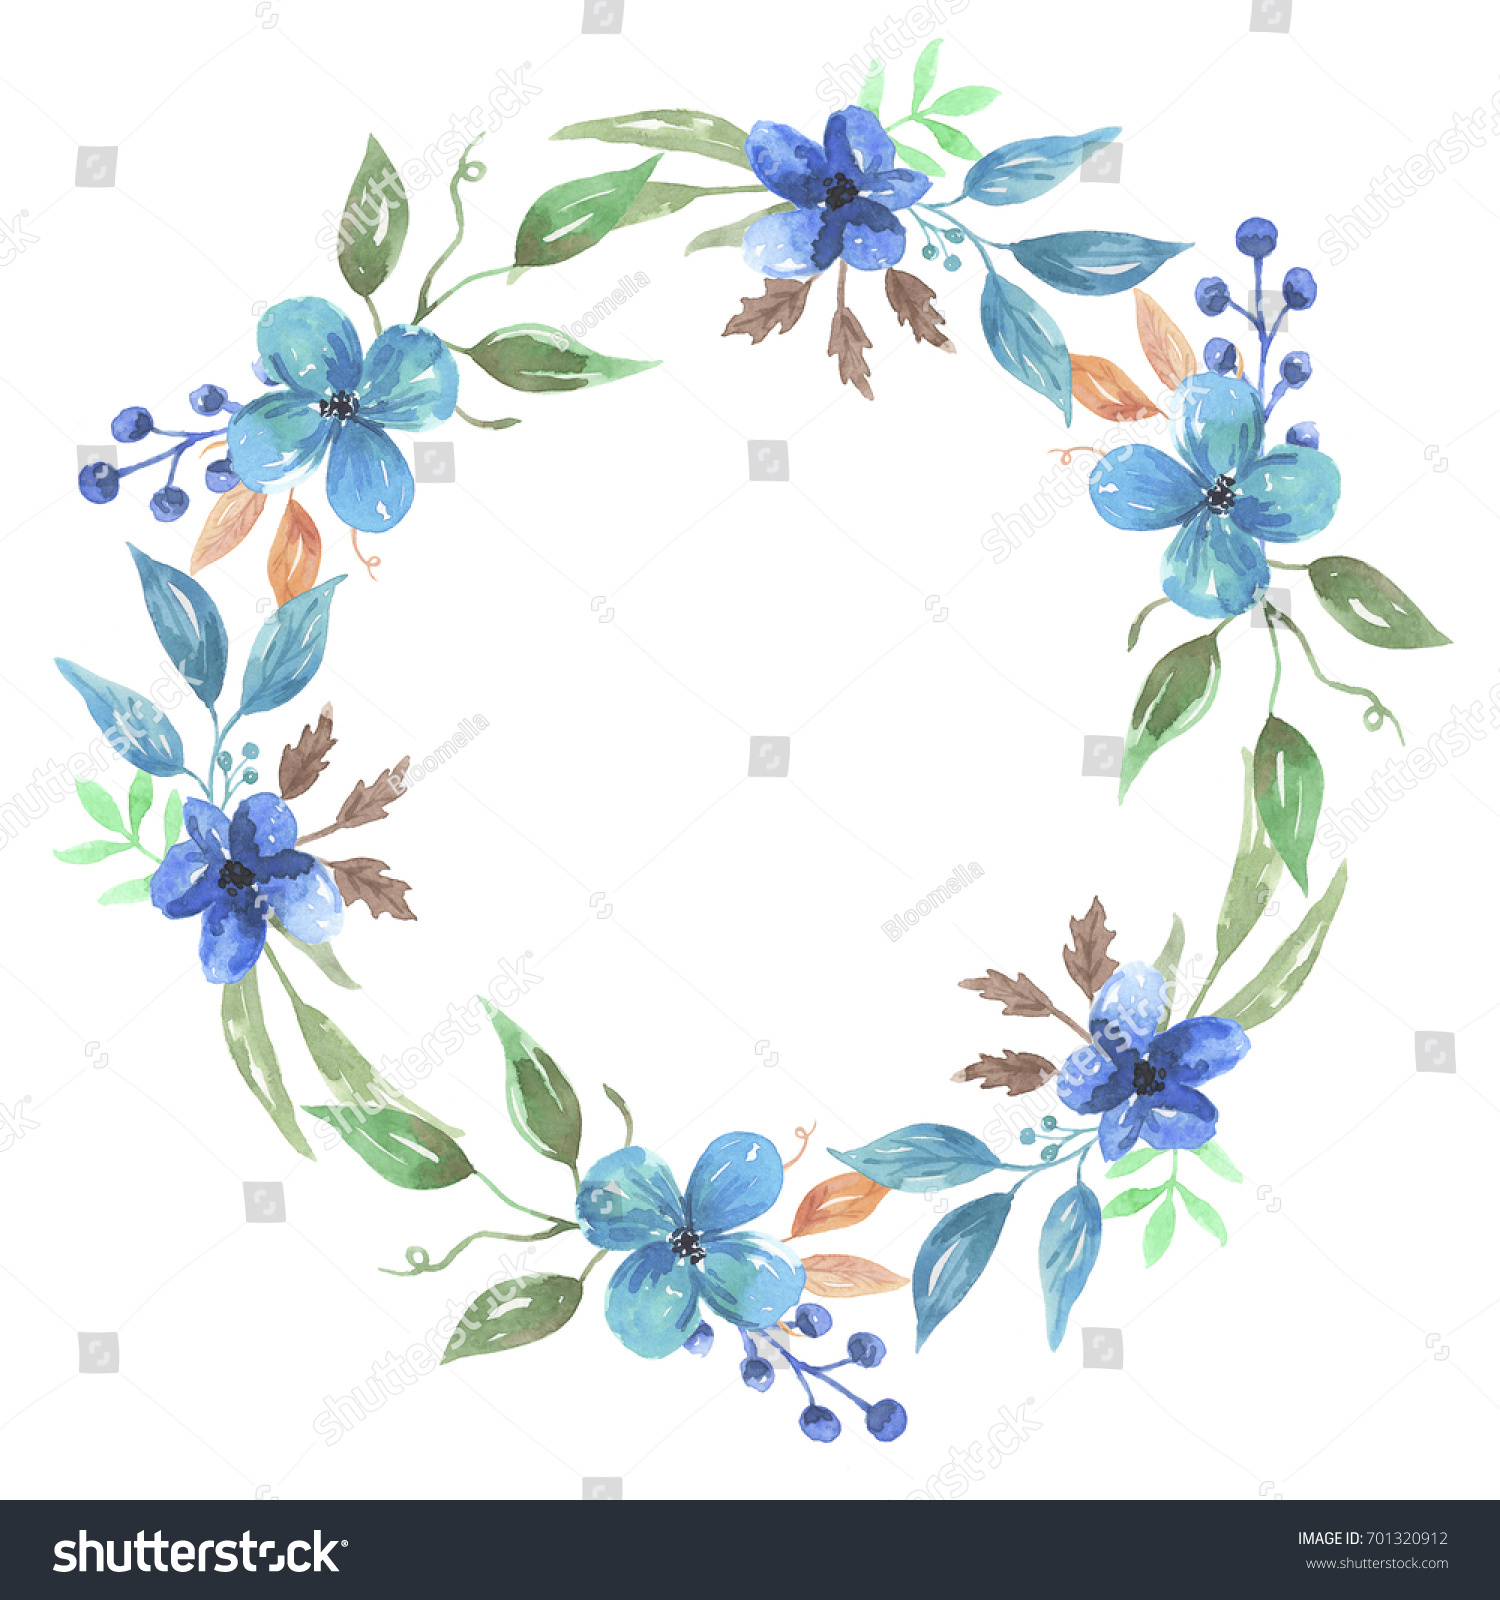 Watercolor flower blue flowers wreath hand stock illustration watercolor flower blue flowers wreath hand painted garland izmirmasajfo